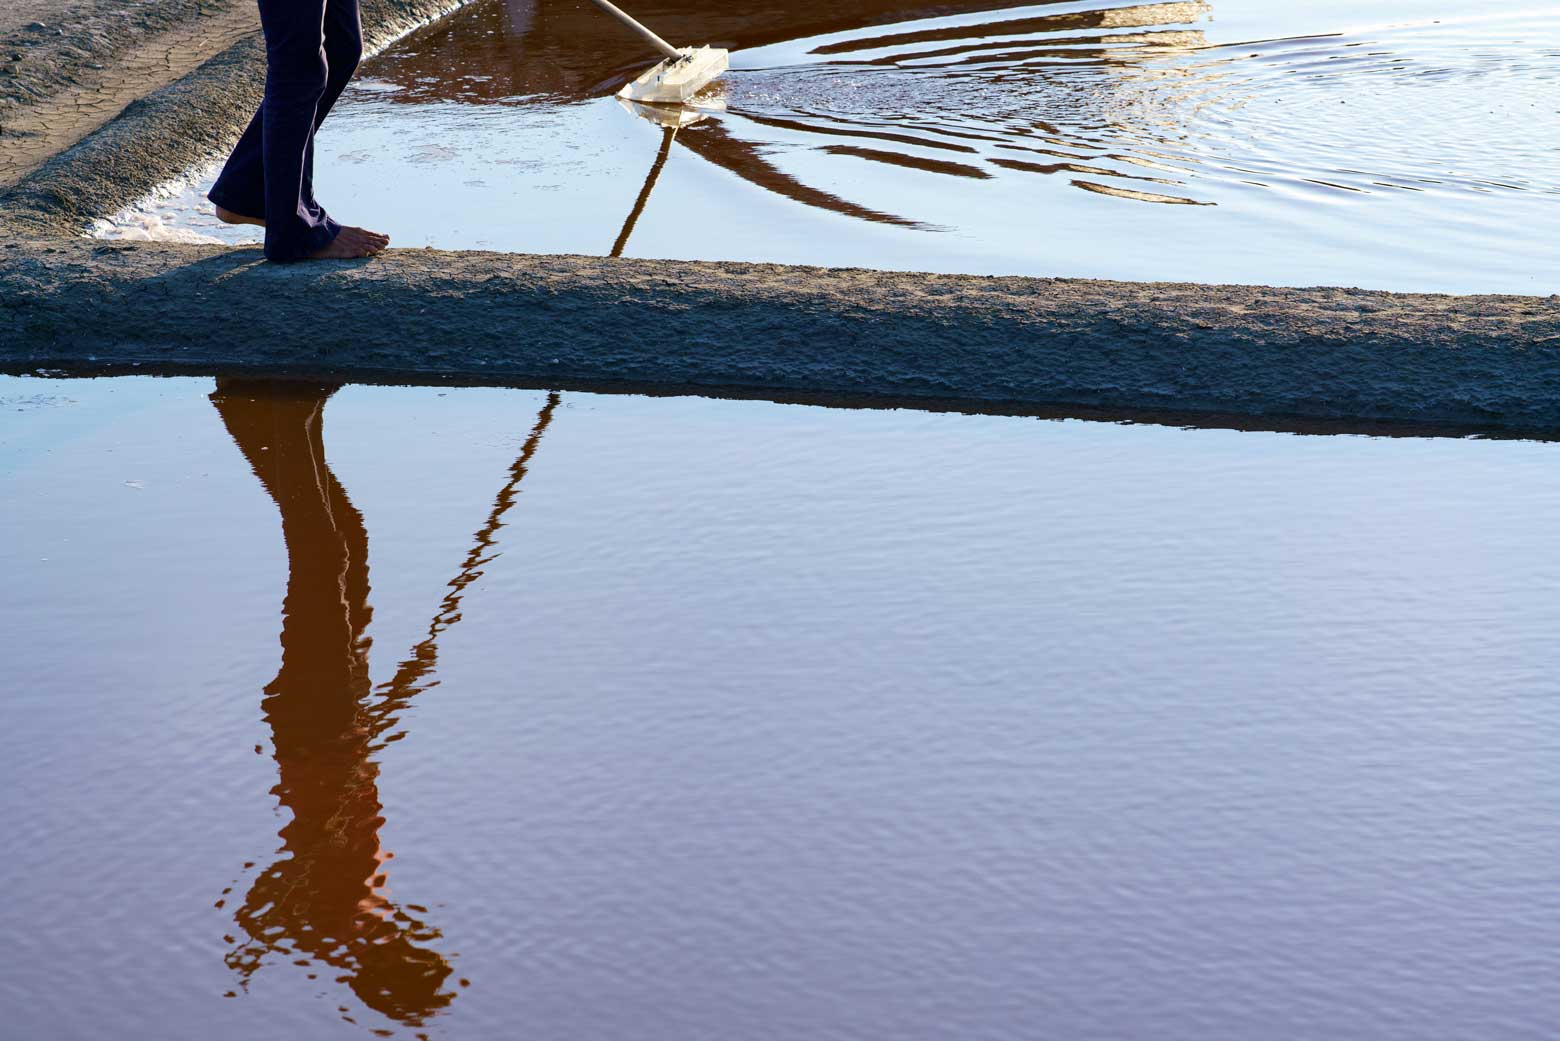 Salt Harvesting Water Reflection In Il De Re, France | Stories + Objects Luxury Travel Magazine